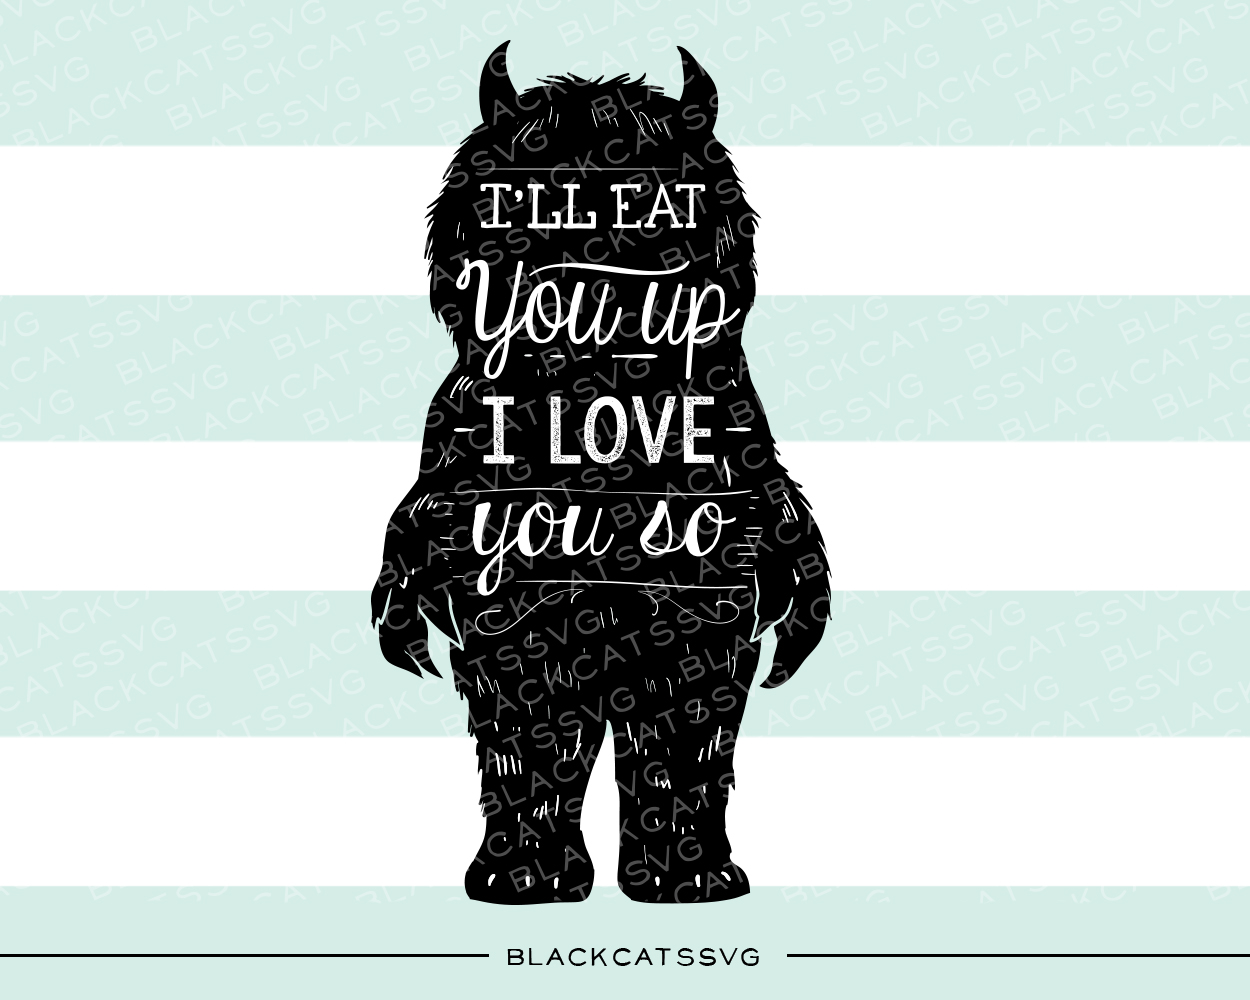 Download Free I Ll Eat You Up I Love You So Svg Cut File By Blackcatssvg for Cricut Explore, Silhouette and other cutting machines.